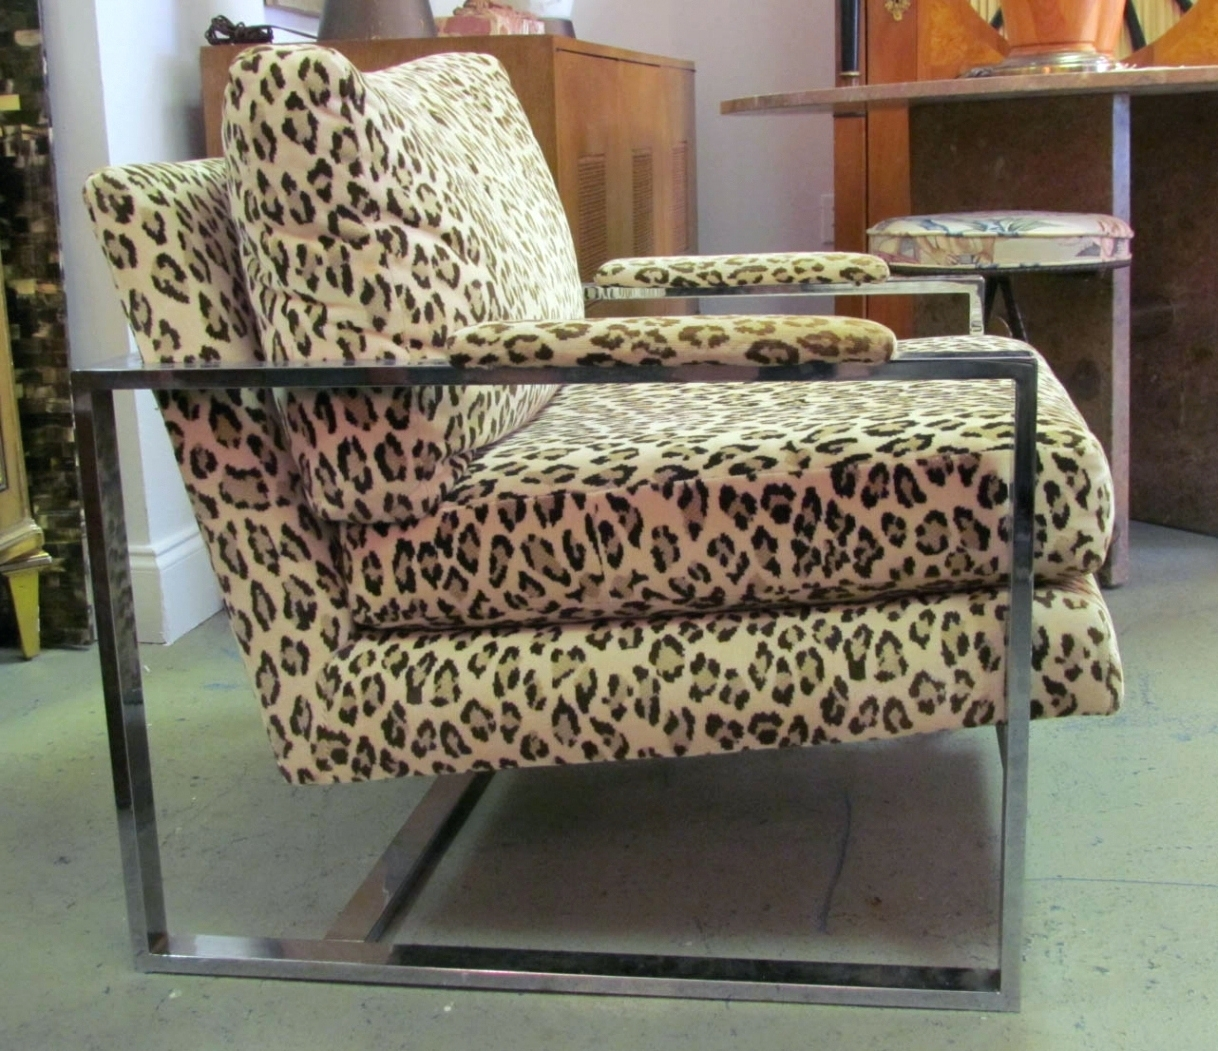 Fashionable Animal Print Lounge Chair Lounge Furniture For Teen Girls Ideas Of Inside Zebra Print Chaise Lounge Chairs (View 3 of 15)